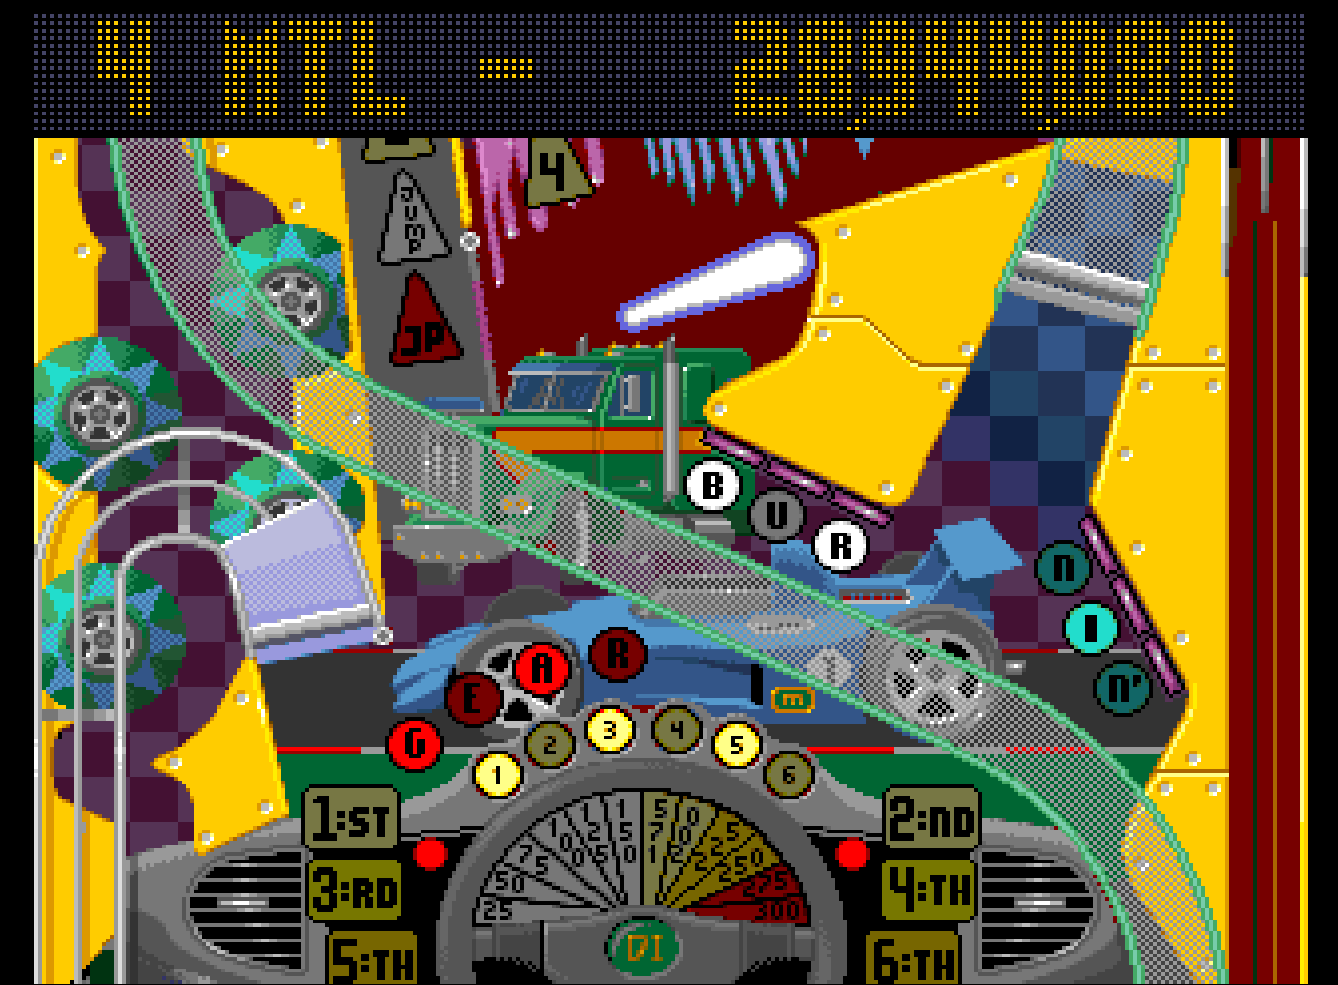 Mantalow: Pinball Fantasies: Speed Devils (Amiga Emulated) 28,944,080 points on 2016-09-21 03:52:38